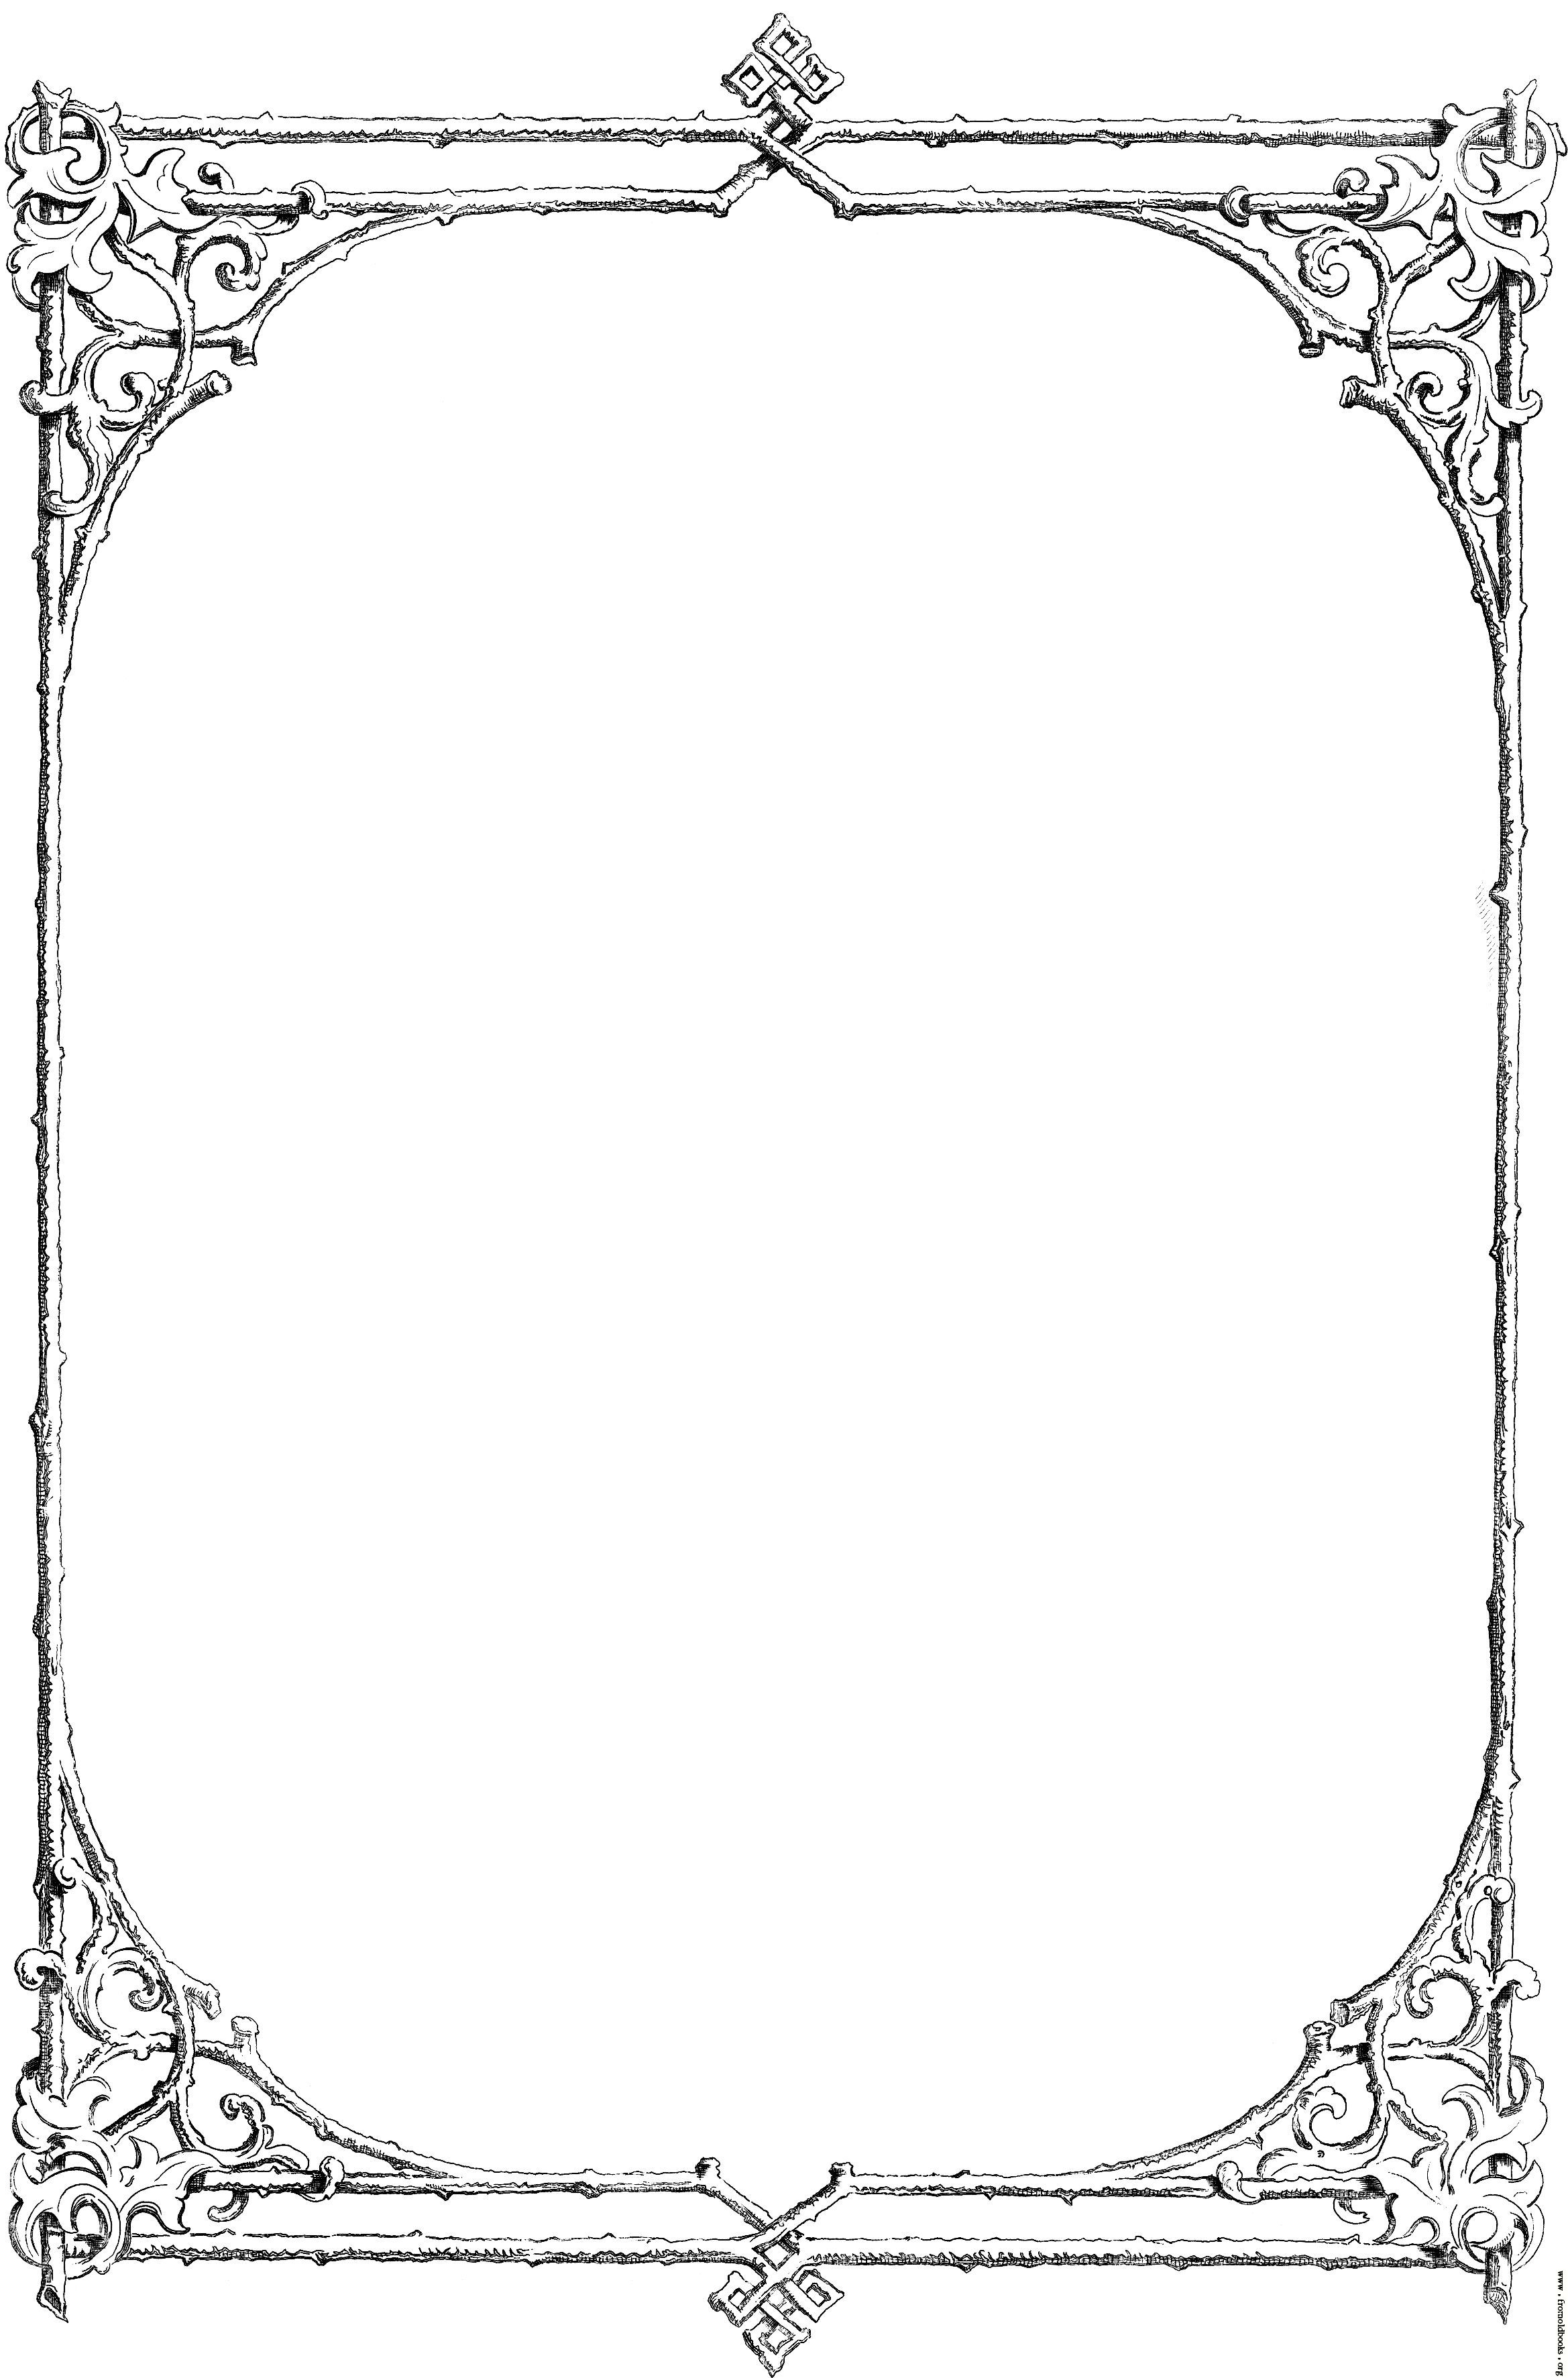 Borders Free Download Clipart.